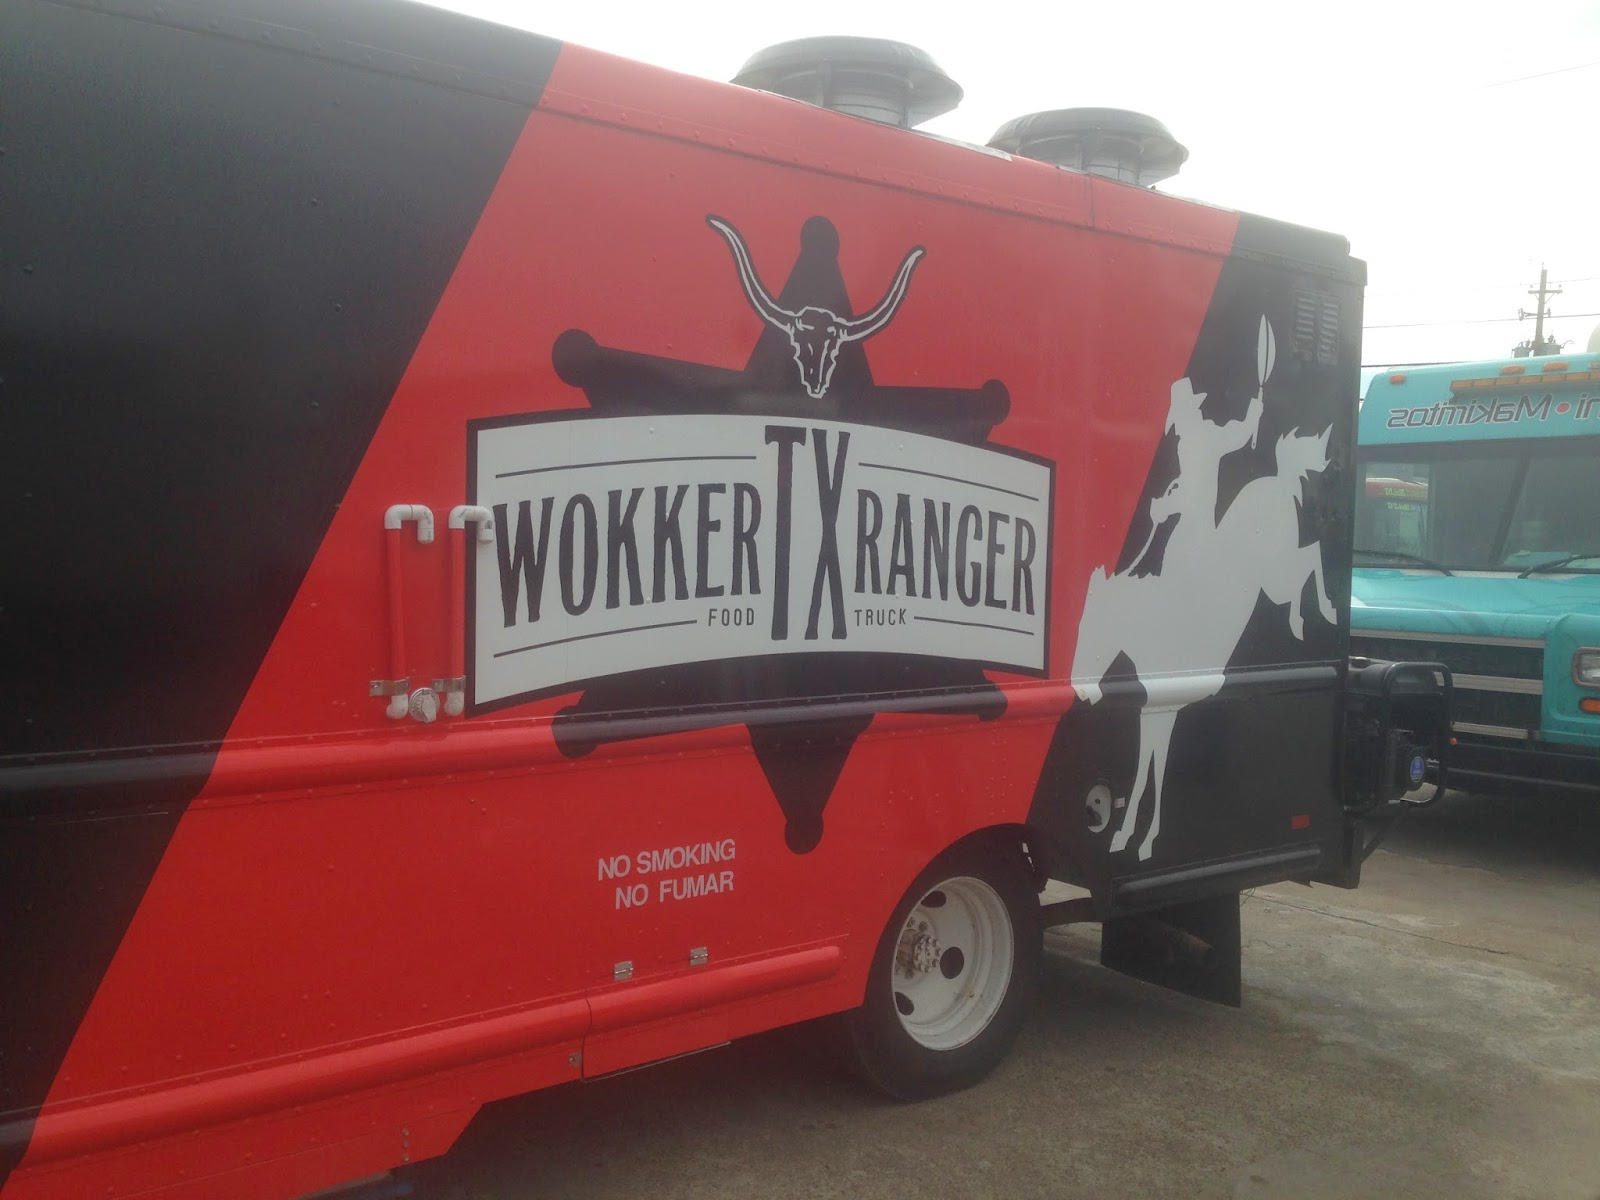 Wokker Texas Ranger Food Truck Houston TX